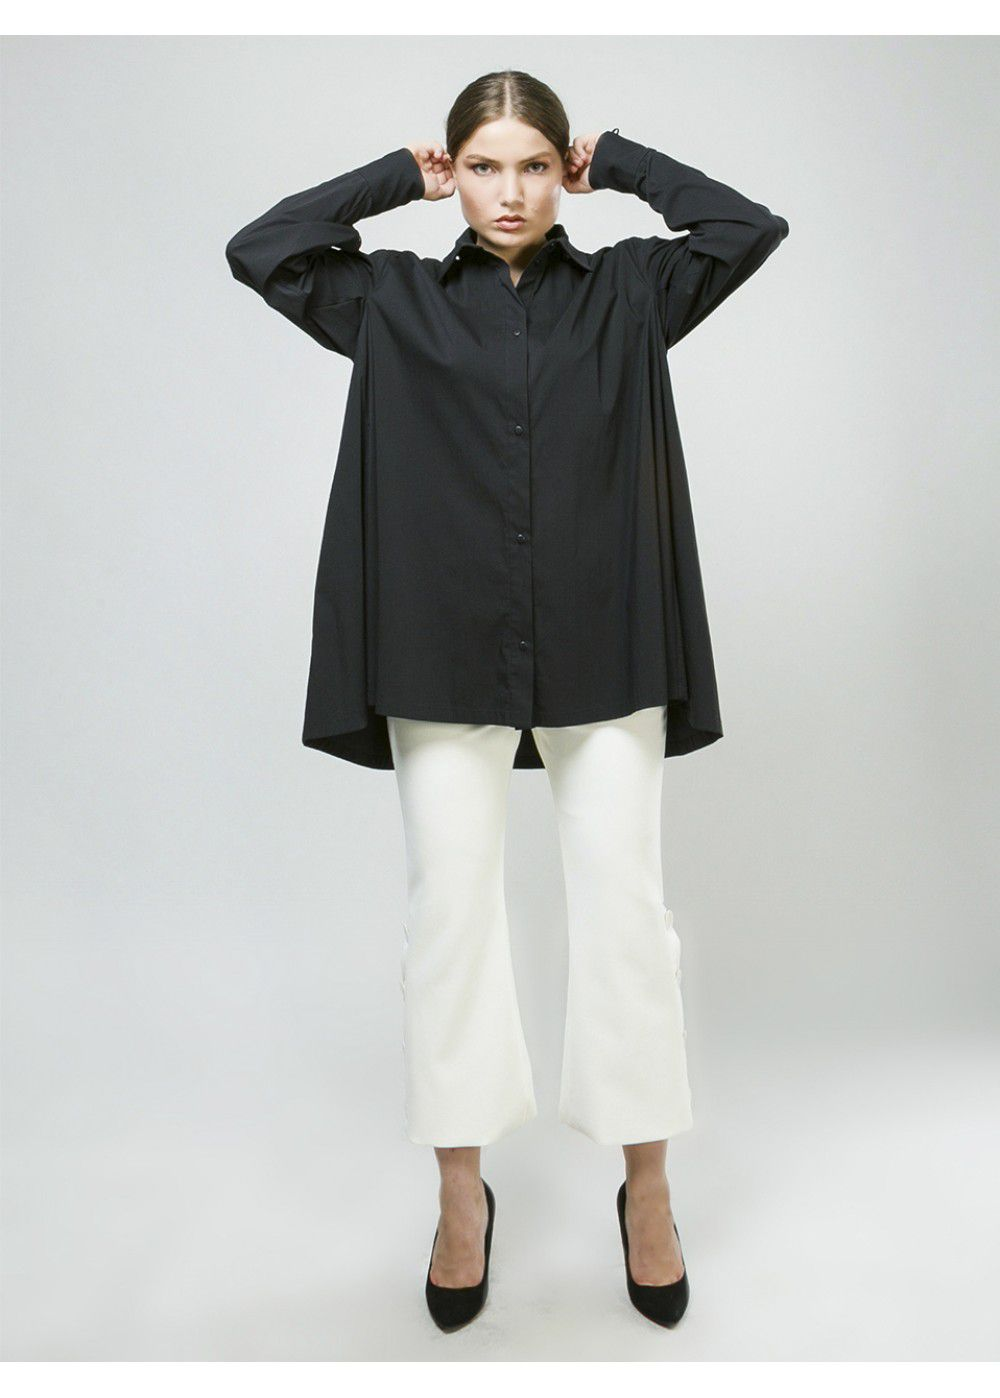 Ruban Shirt with Removable Back